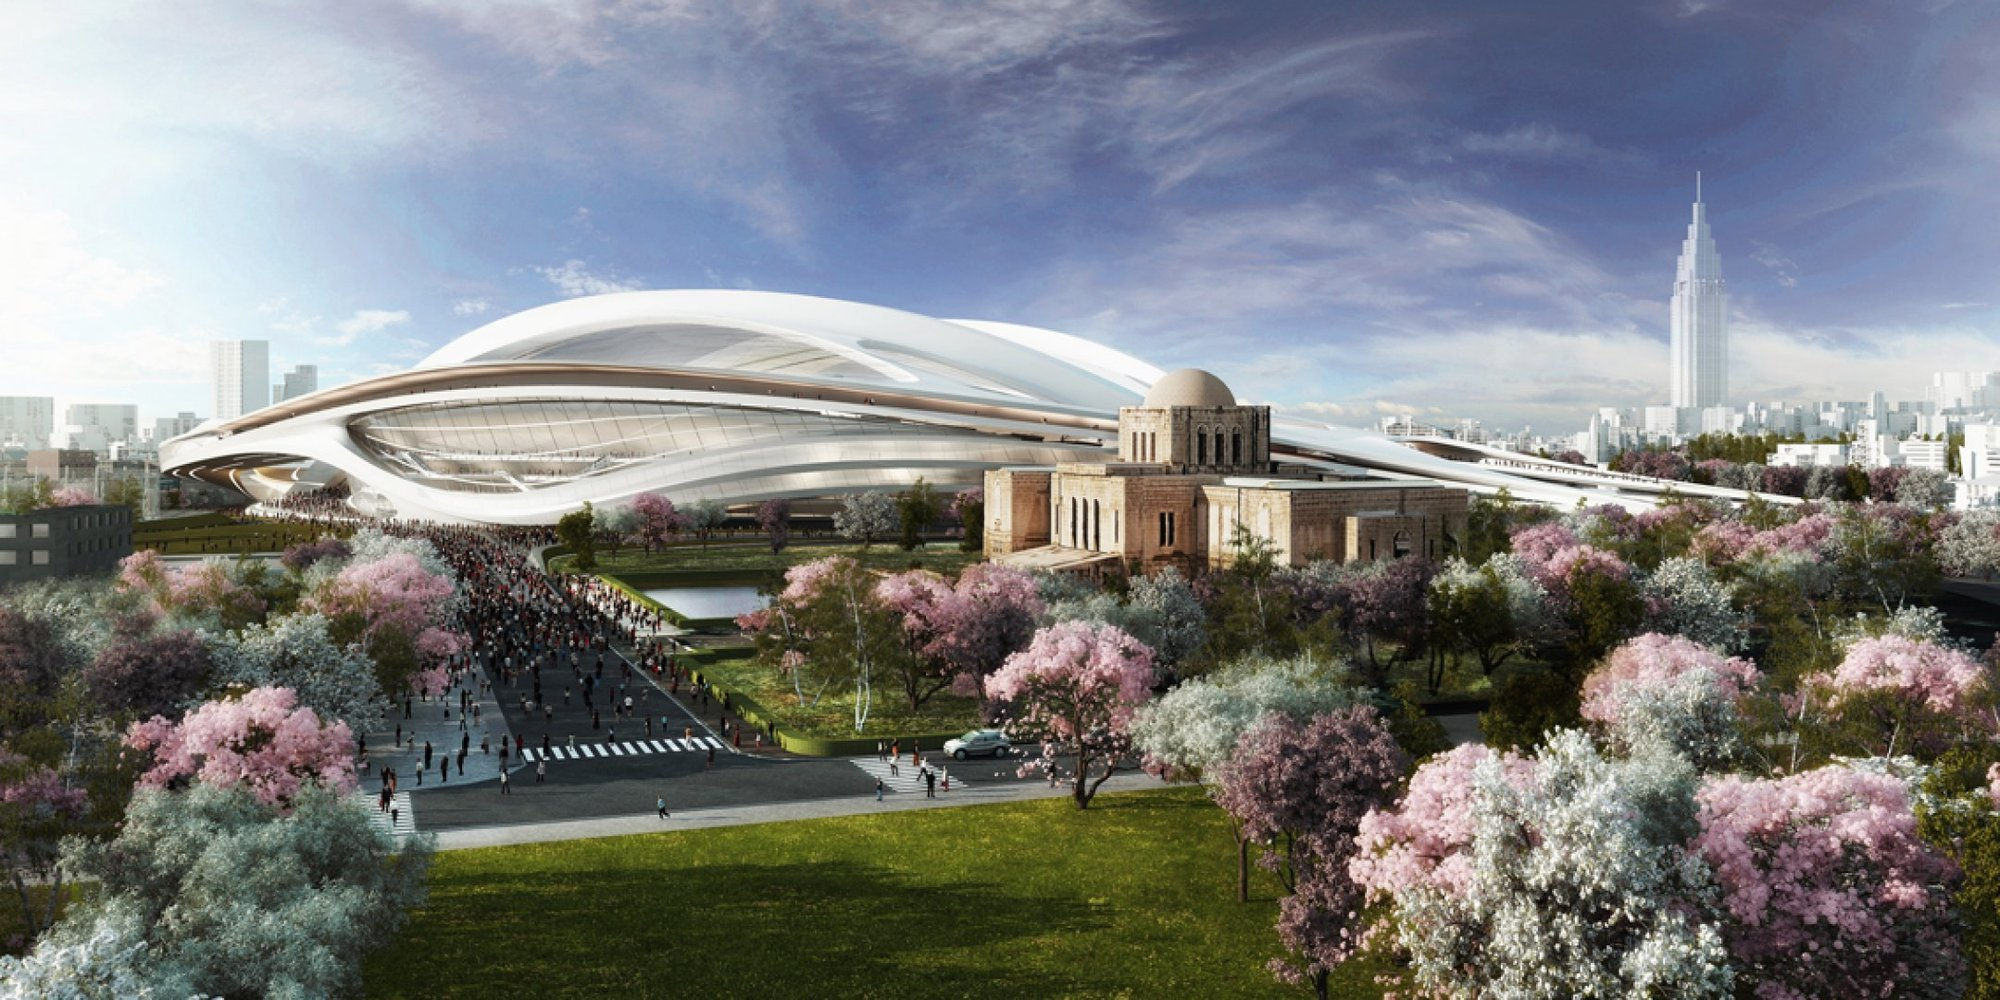 Zaha Hadid Architects' original design for the Tokyo National Stadium. Image Courtesy of ZHA